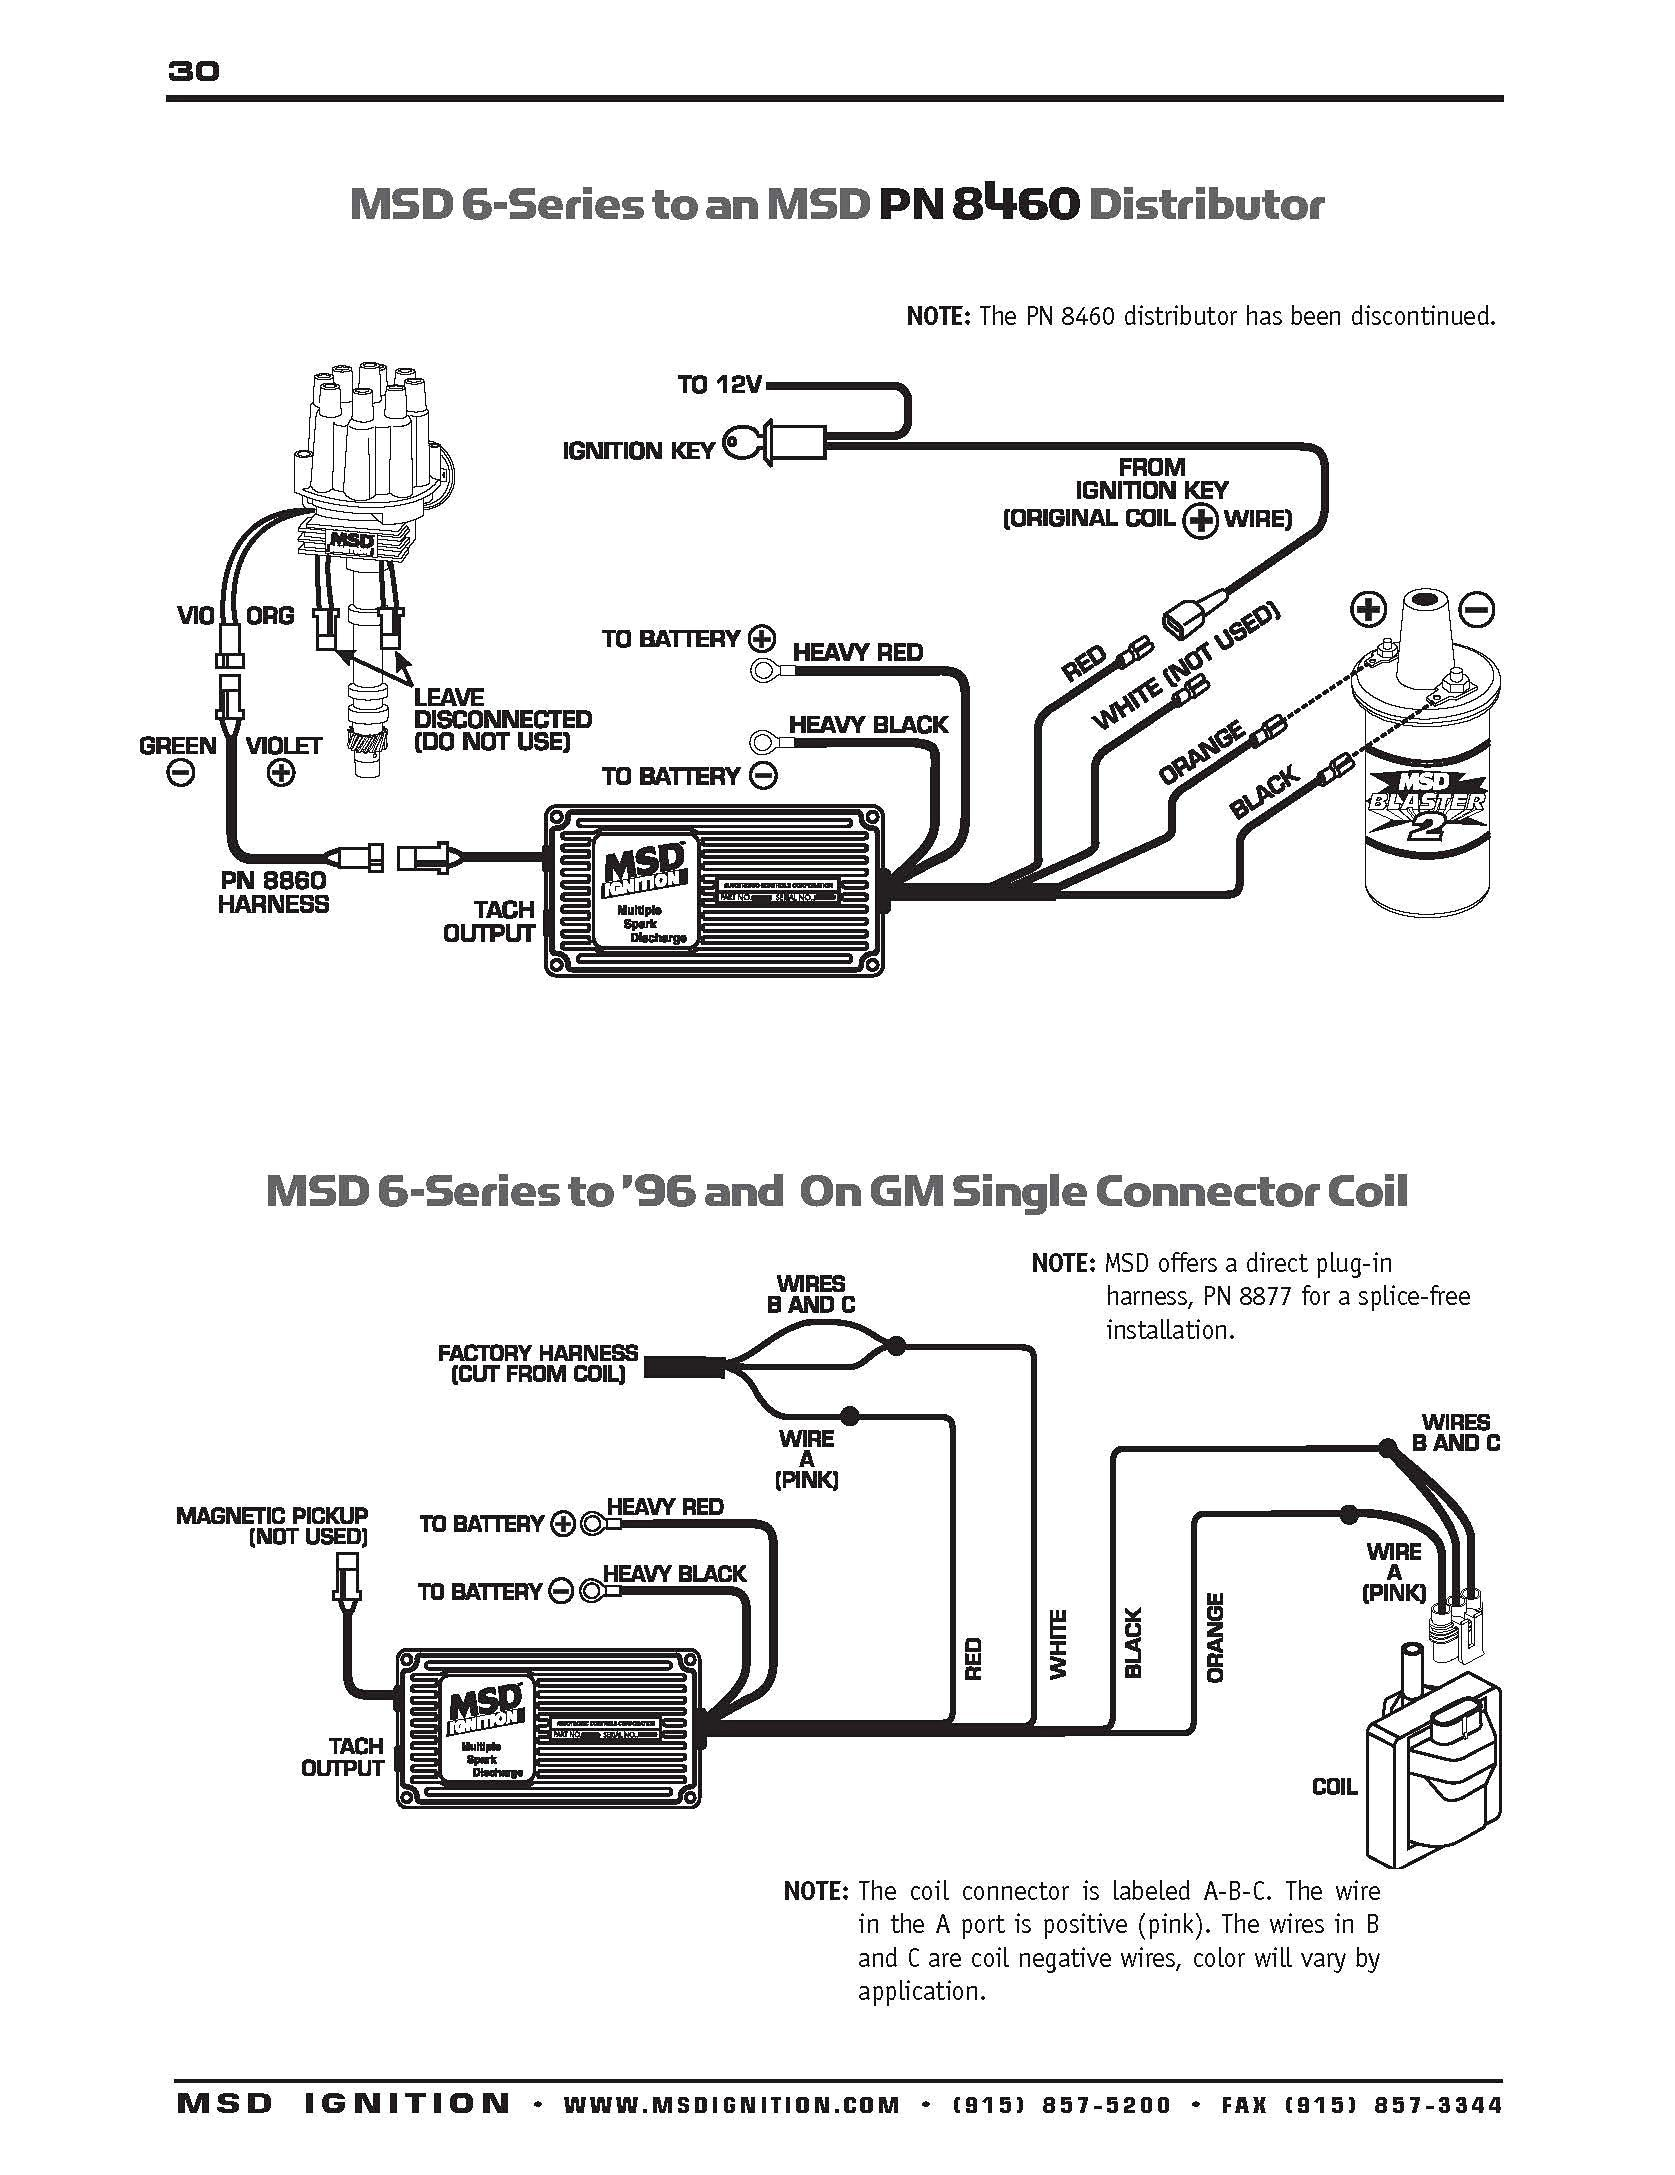 Accel Ignition Module Wiring Diagram Ford - How To Wire Headlights To A  Toggle Switch for Wiring Diagram SchematicsWiring Diagram Schematics